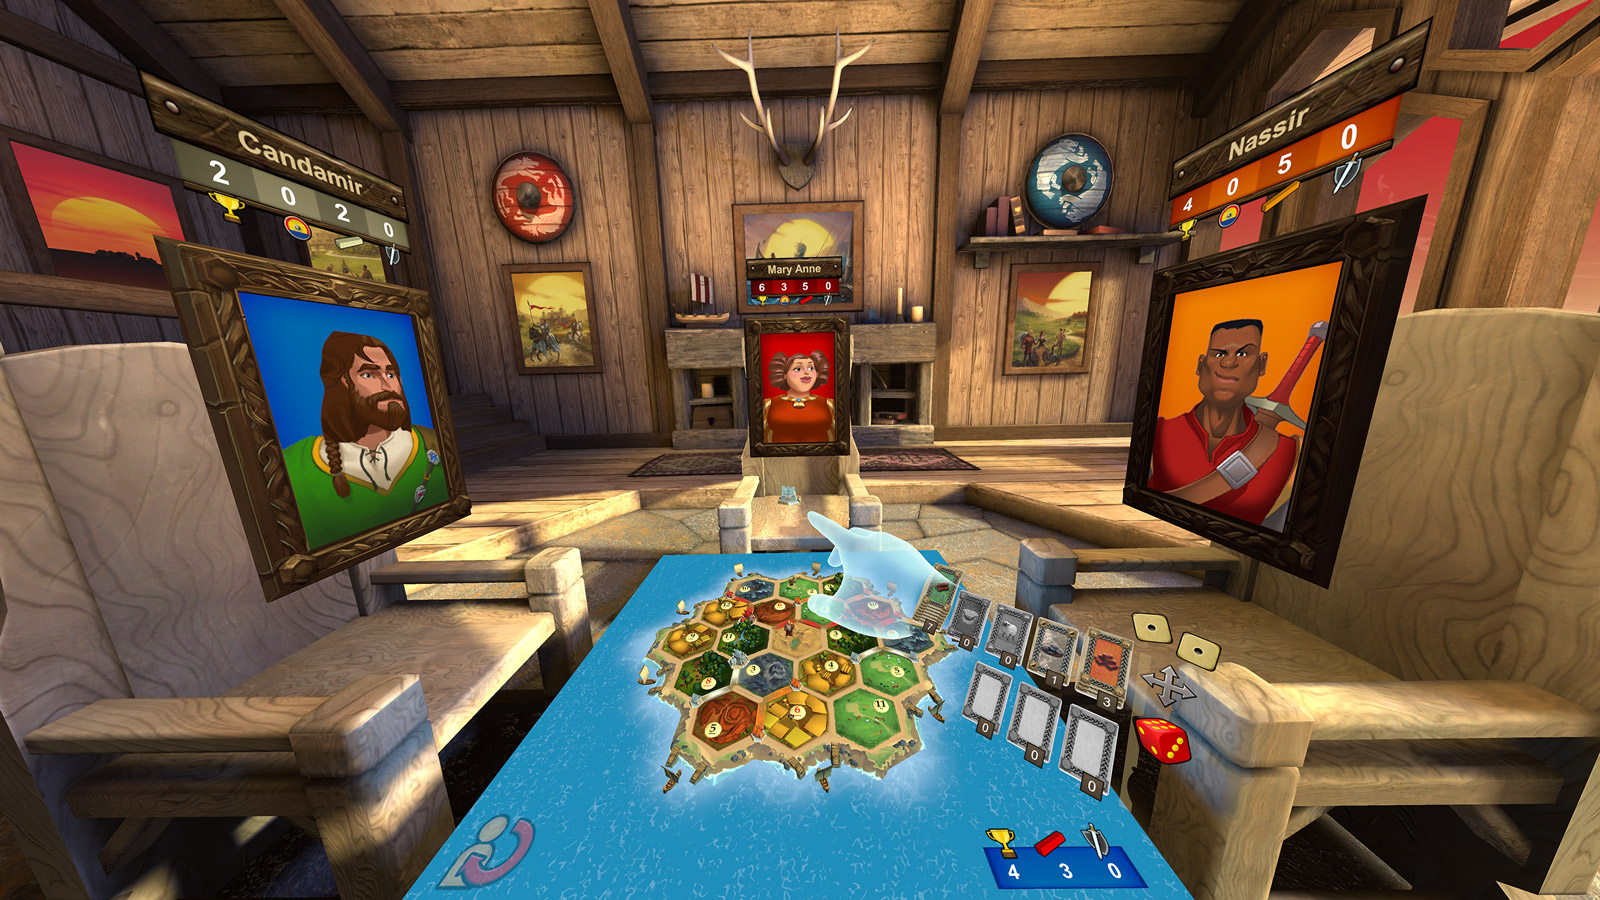 u0026 39 catan vr u0026 39  to launch free closed beta soon  first images